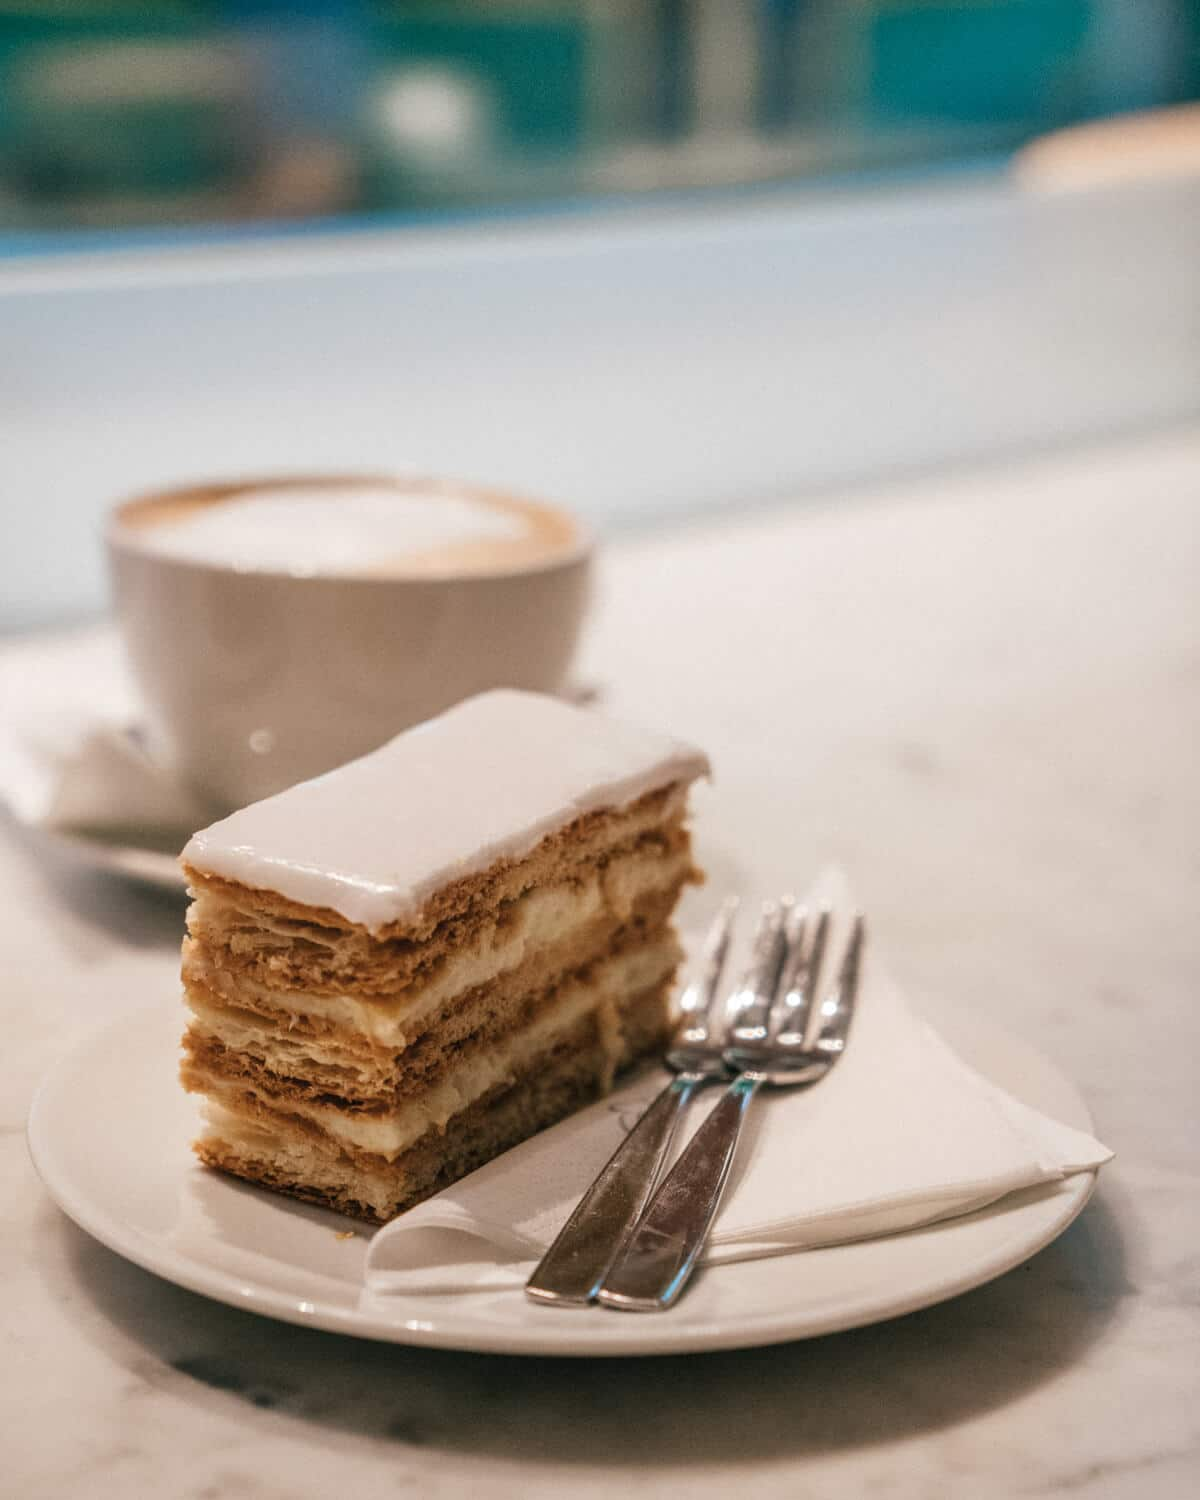 10 Can't-Miss Experiences and Places to Visit in Helsinki, Finland | Pastries at Ekberg Bakery